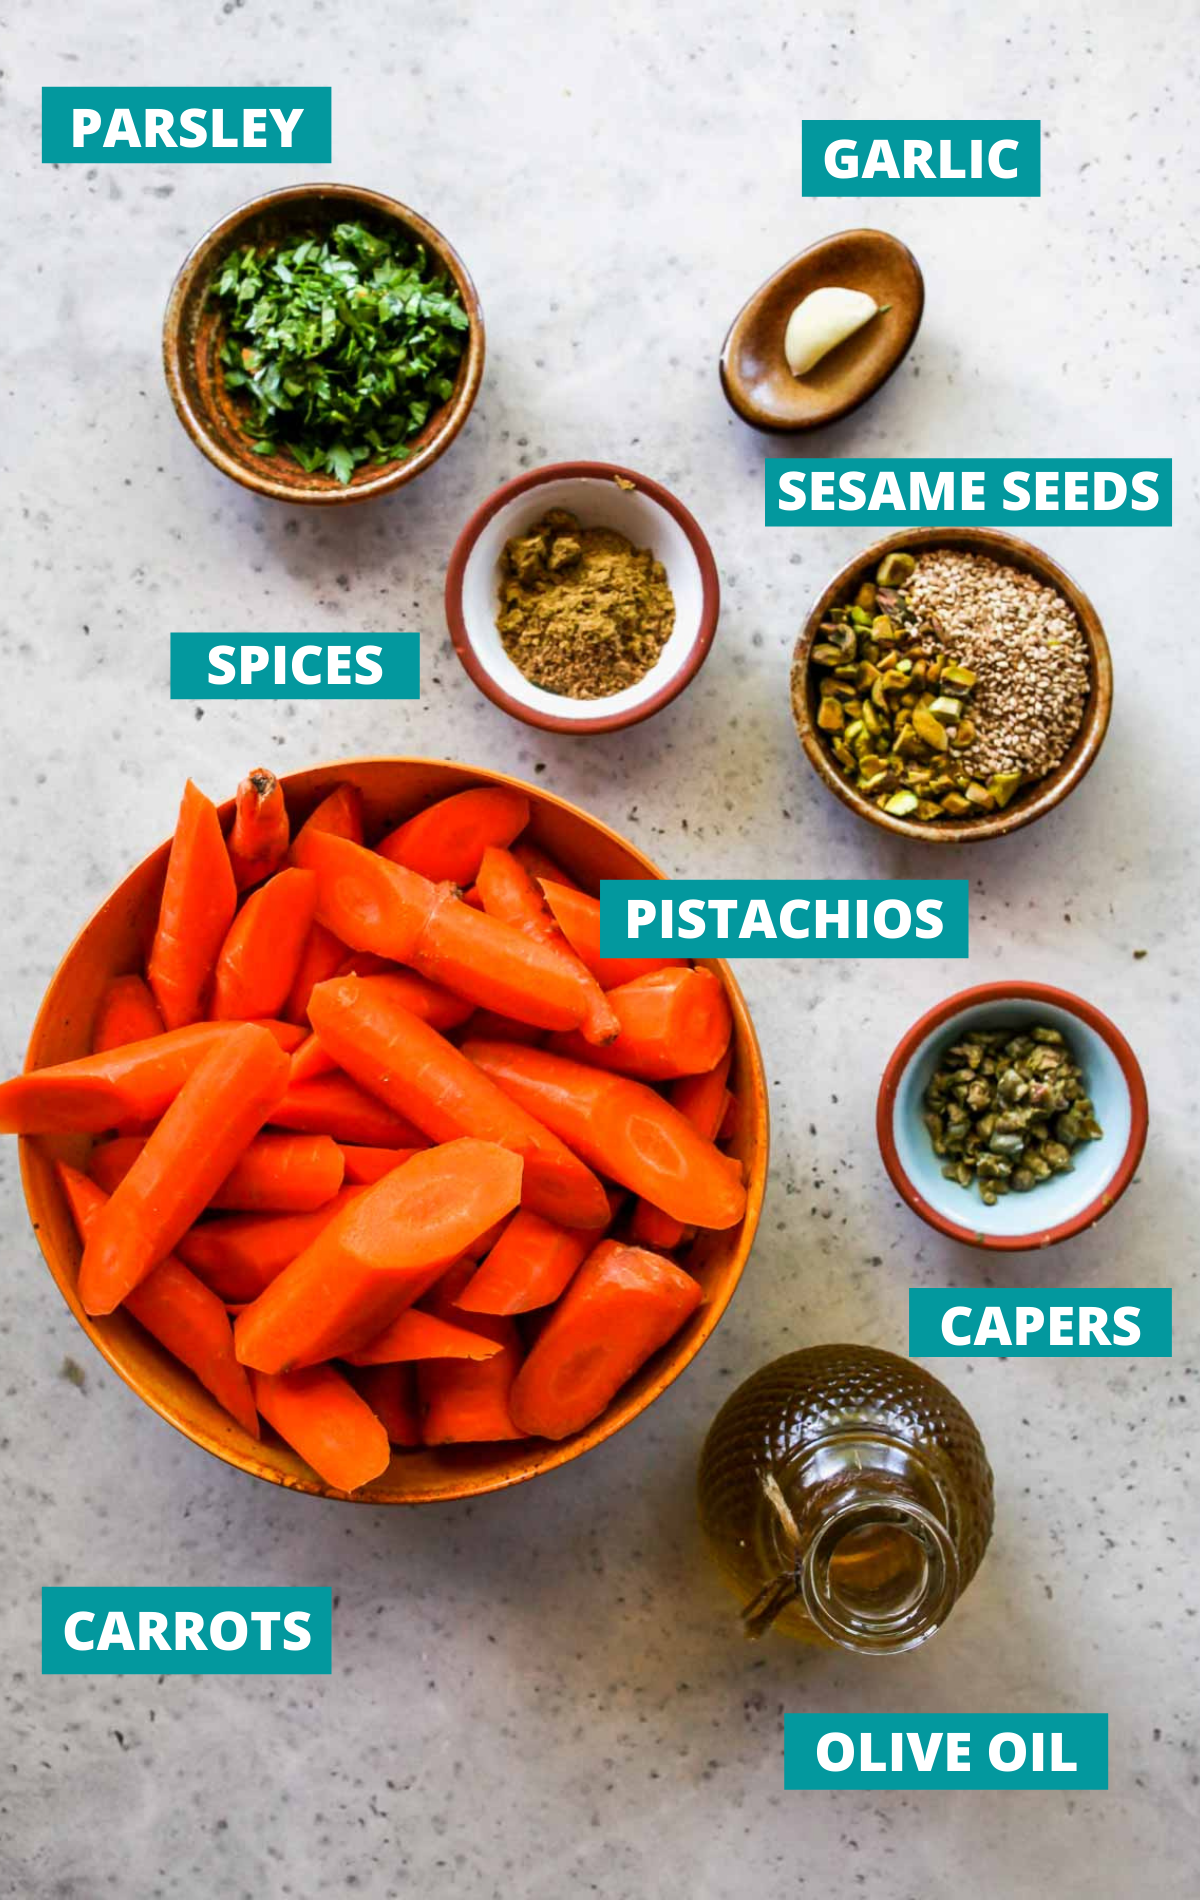 Recipe ingredients on a board with blue labels